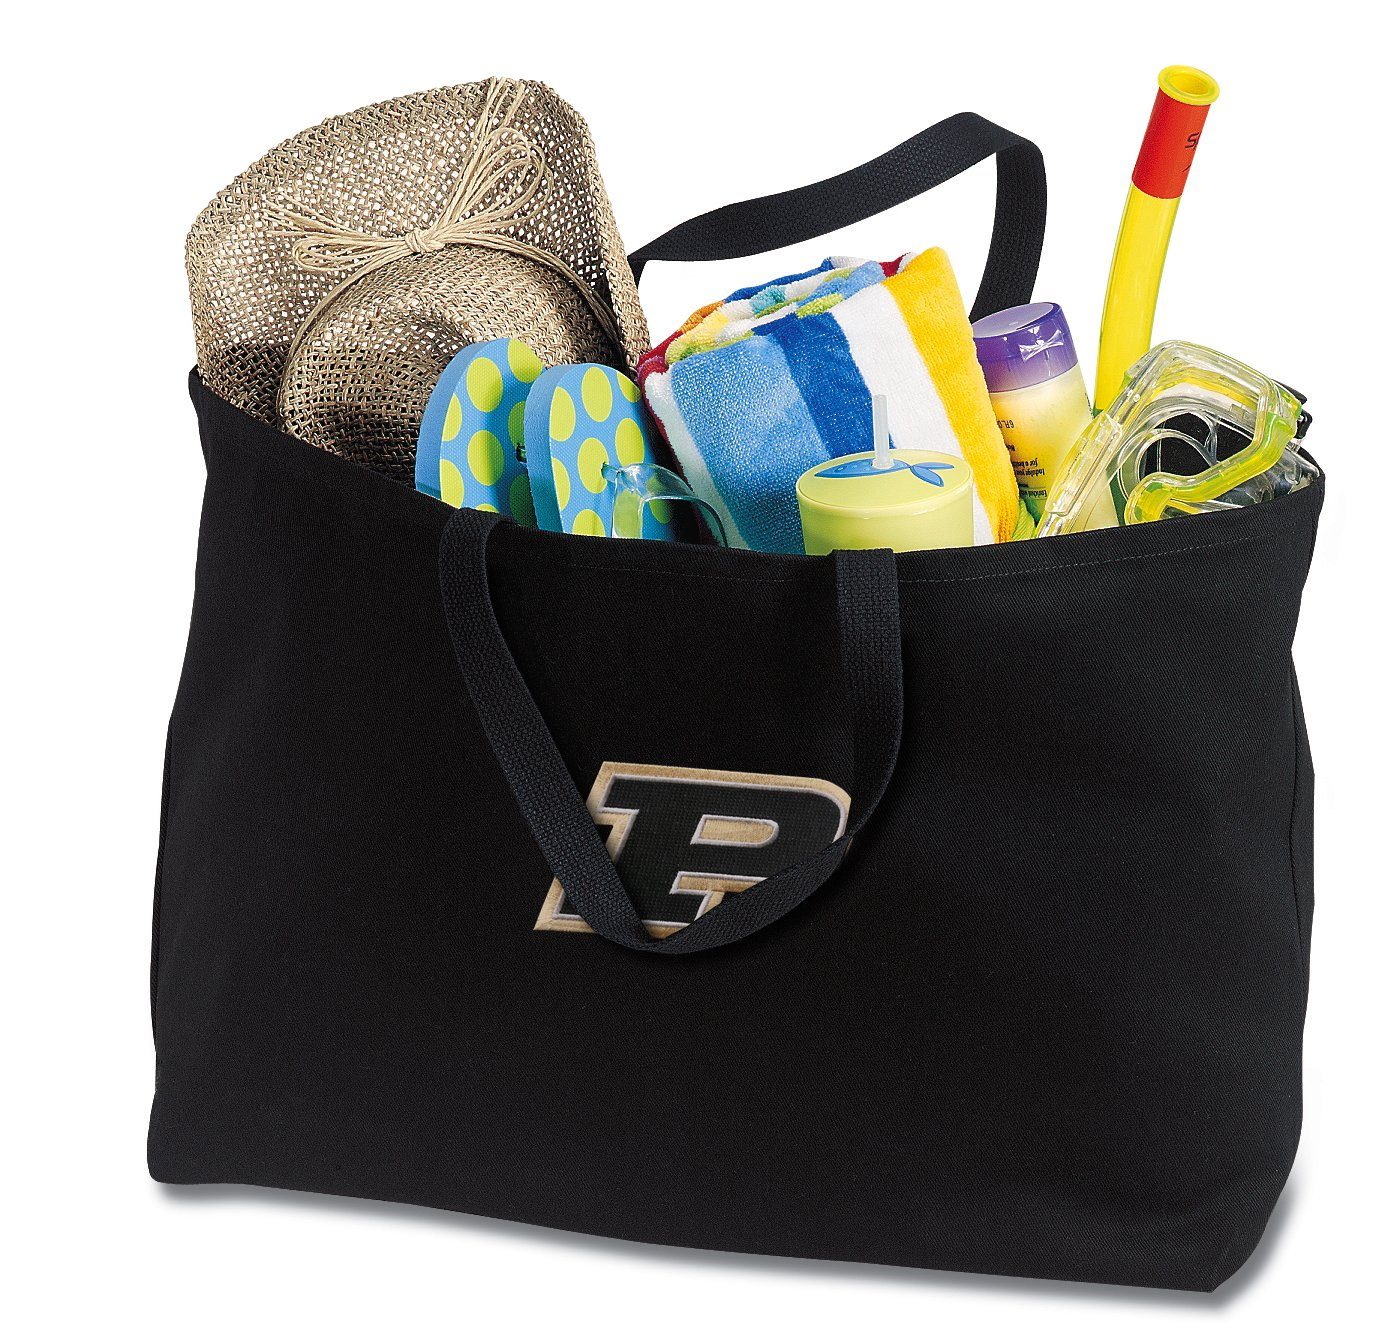 JUMBO Purdue Tote Bag or Large Canvas Purdue University Shopping Bag